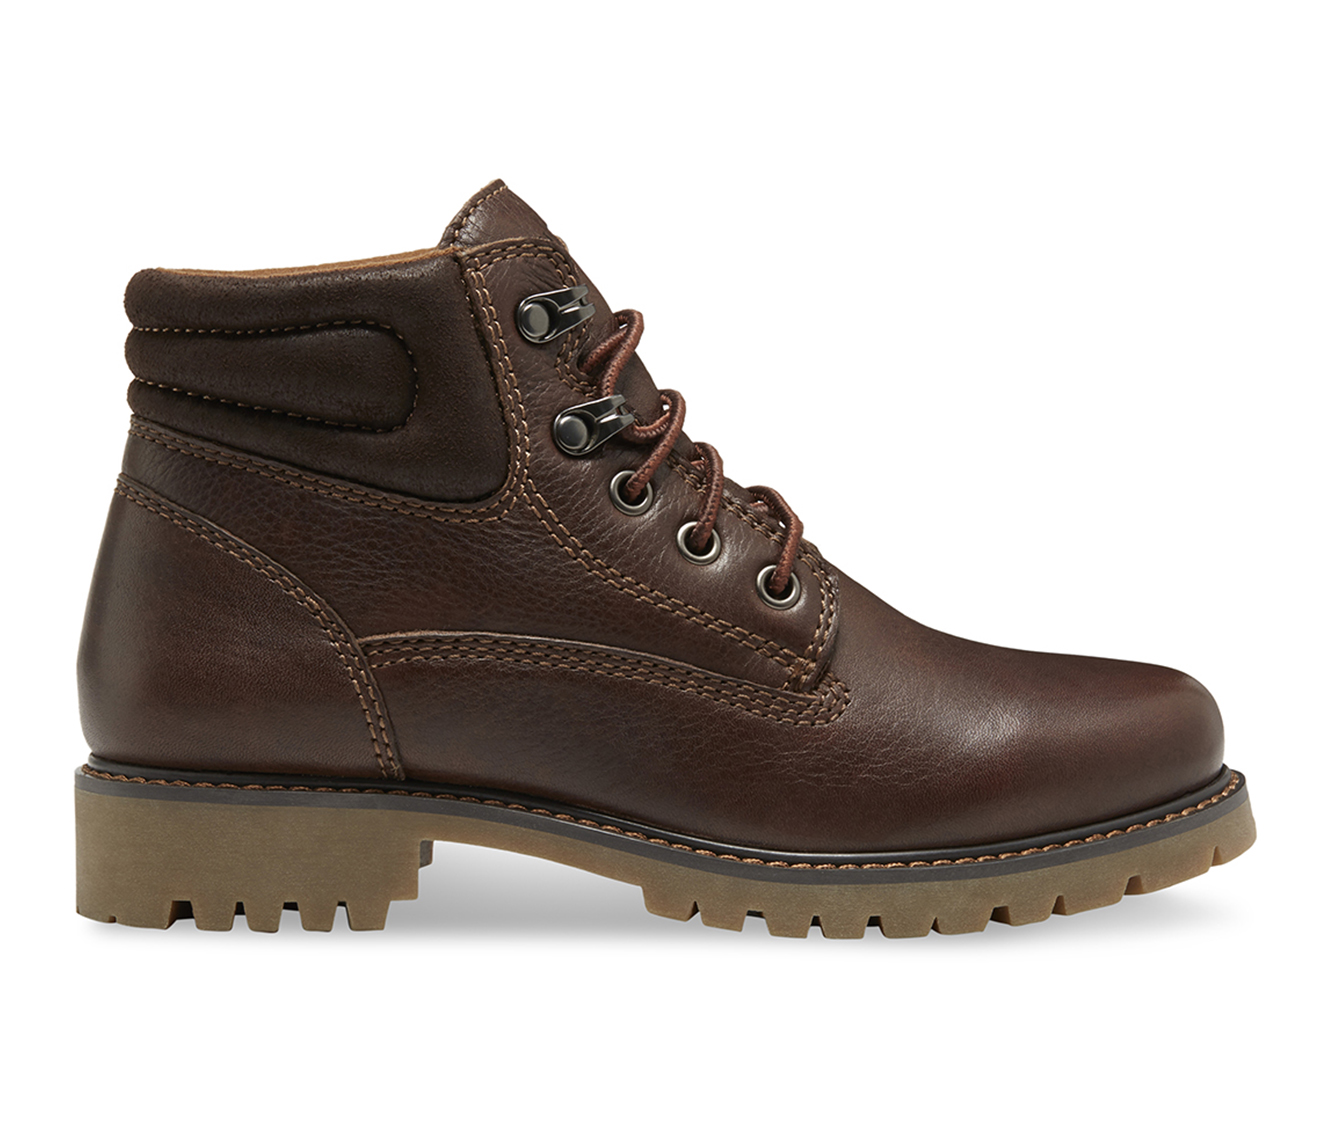 Eastland Edith Women's Boots (Brown - Leather)